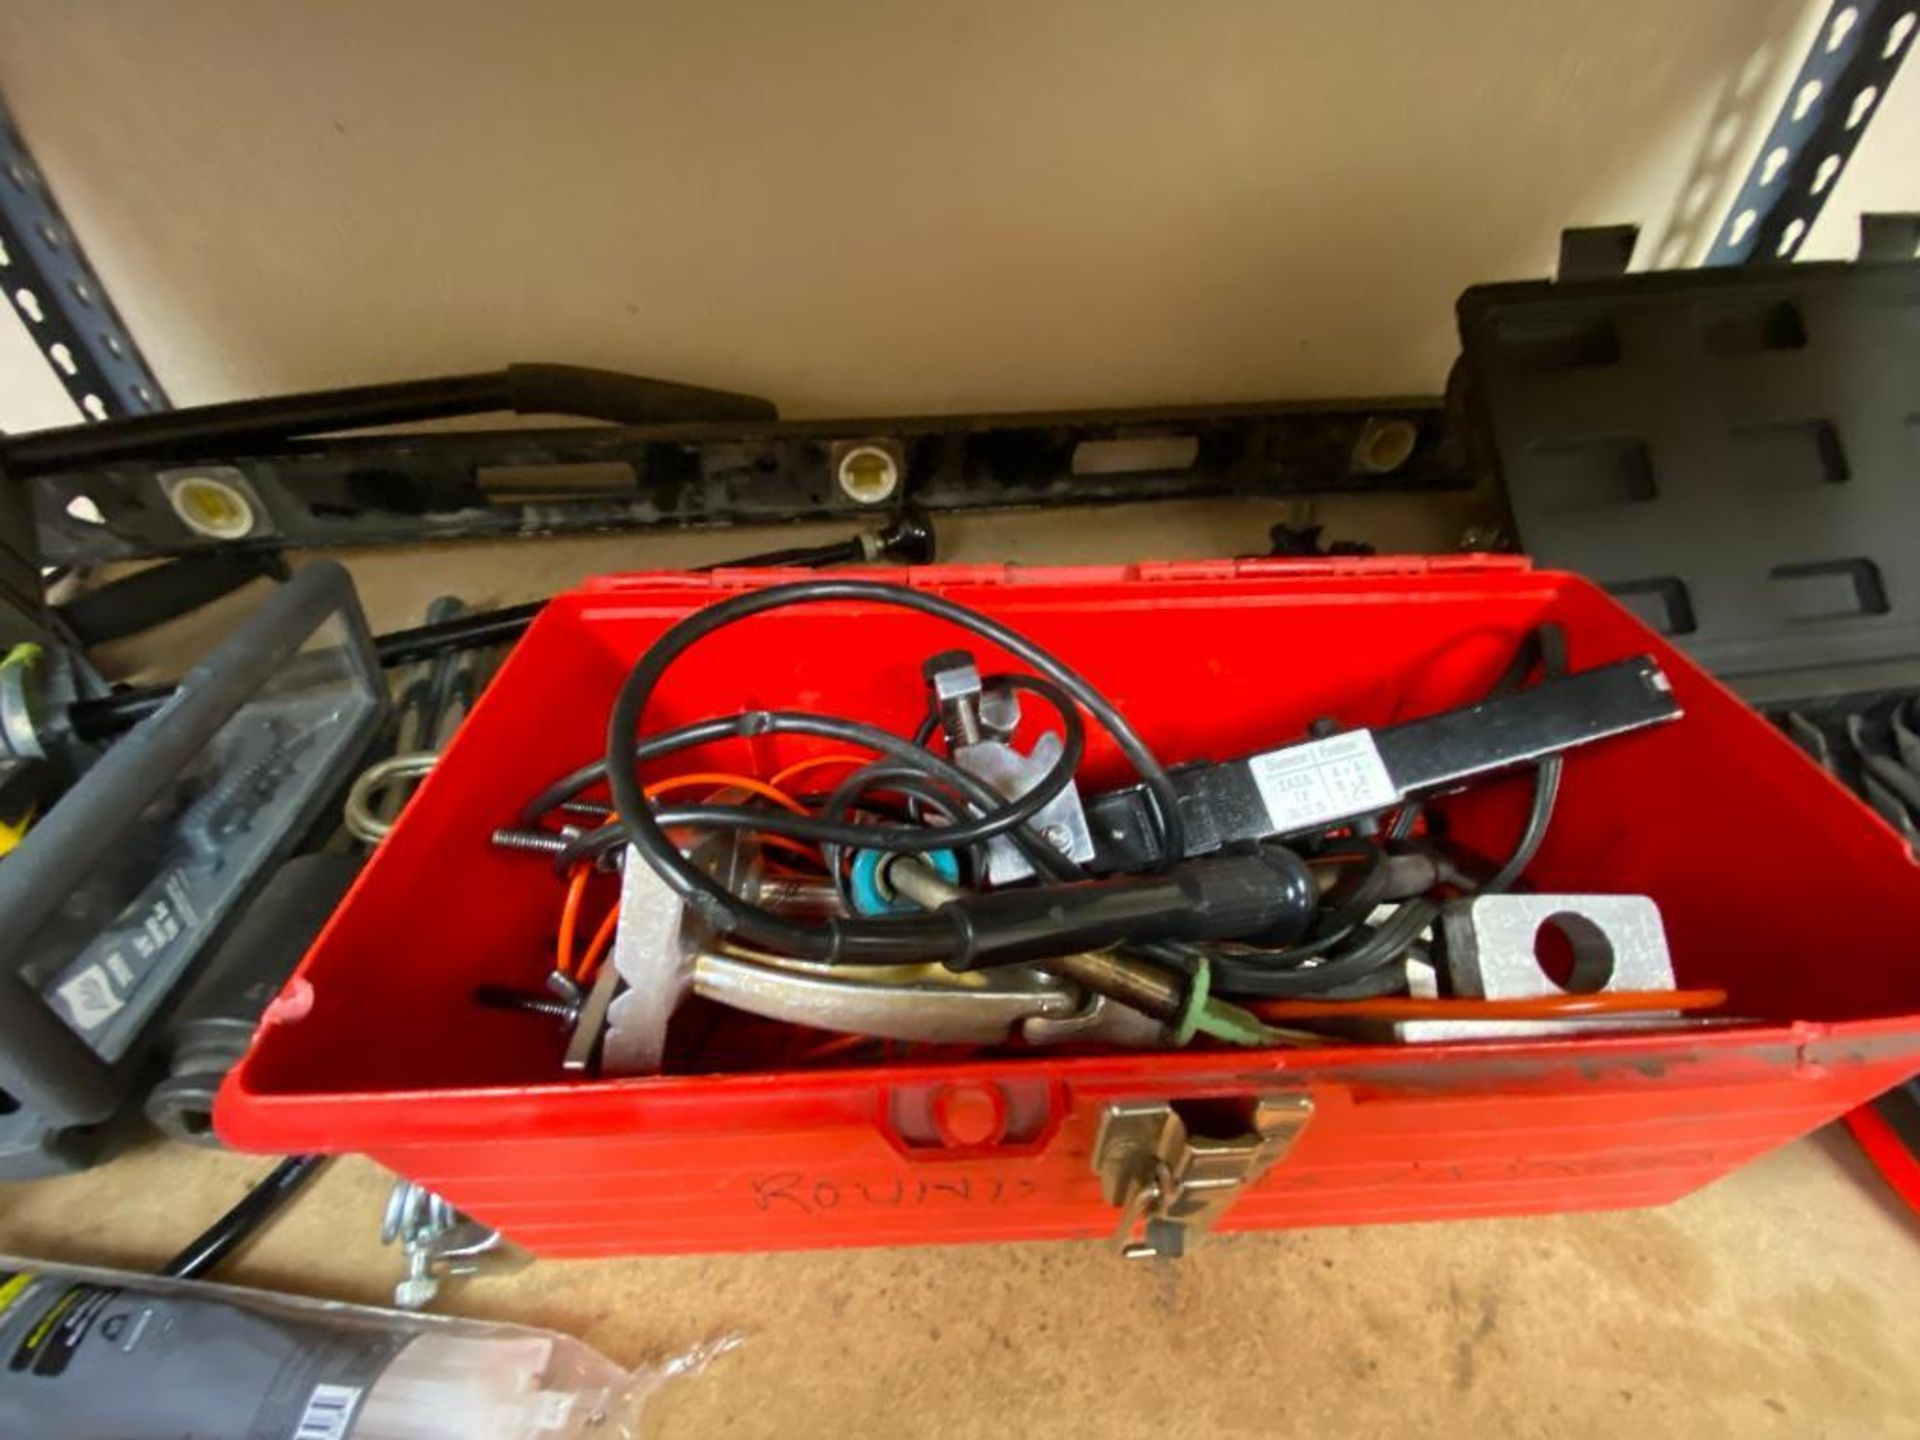 various tools includes bits, large wrenches, lockout tagout kit, grinder - Image 5 of 18